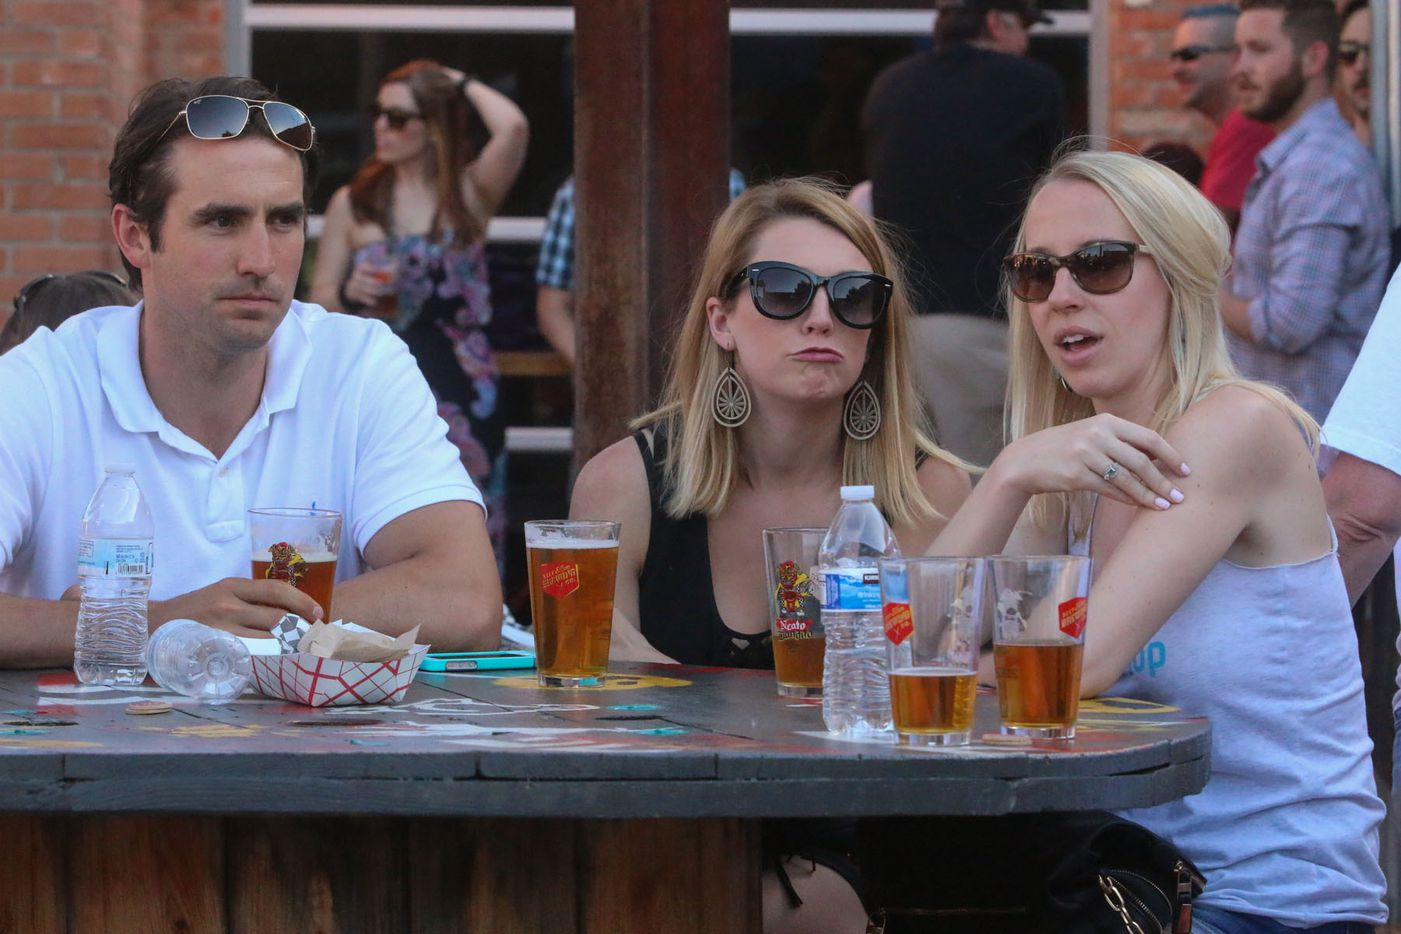 Pints for Paws charity event  with all proceeds benefit The Puppy Rescue Mission was held at Deep Ellum Brewing Co on April 25, 2015.